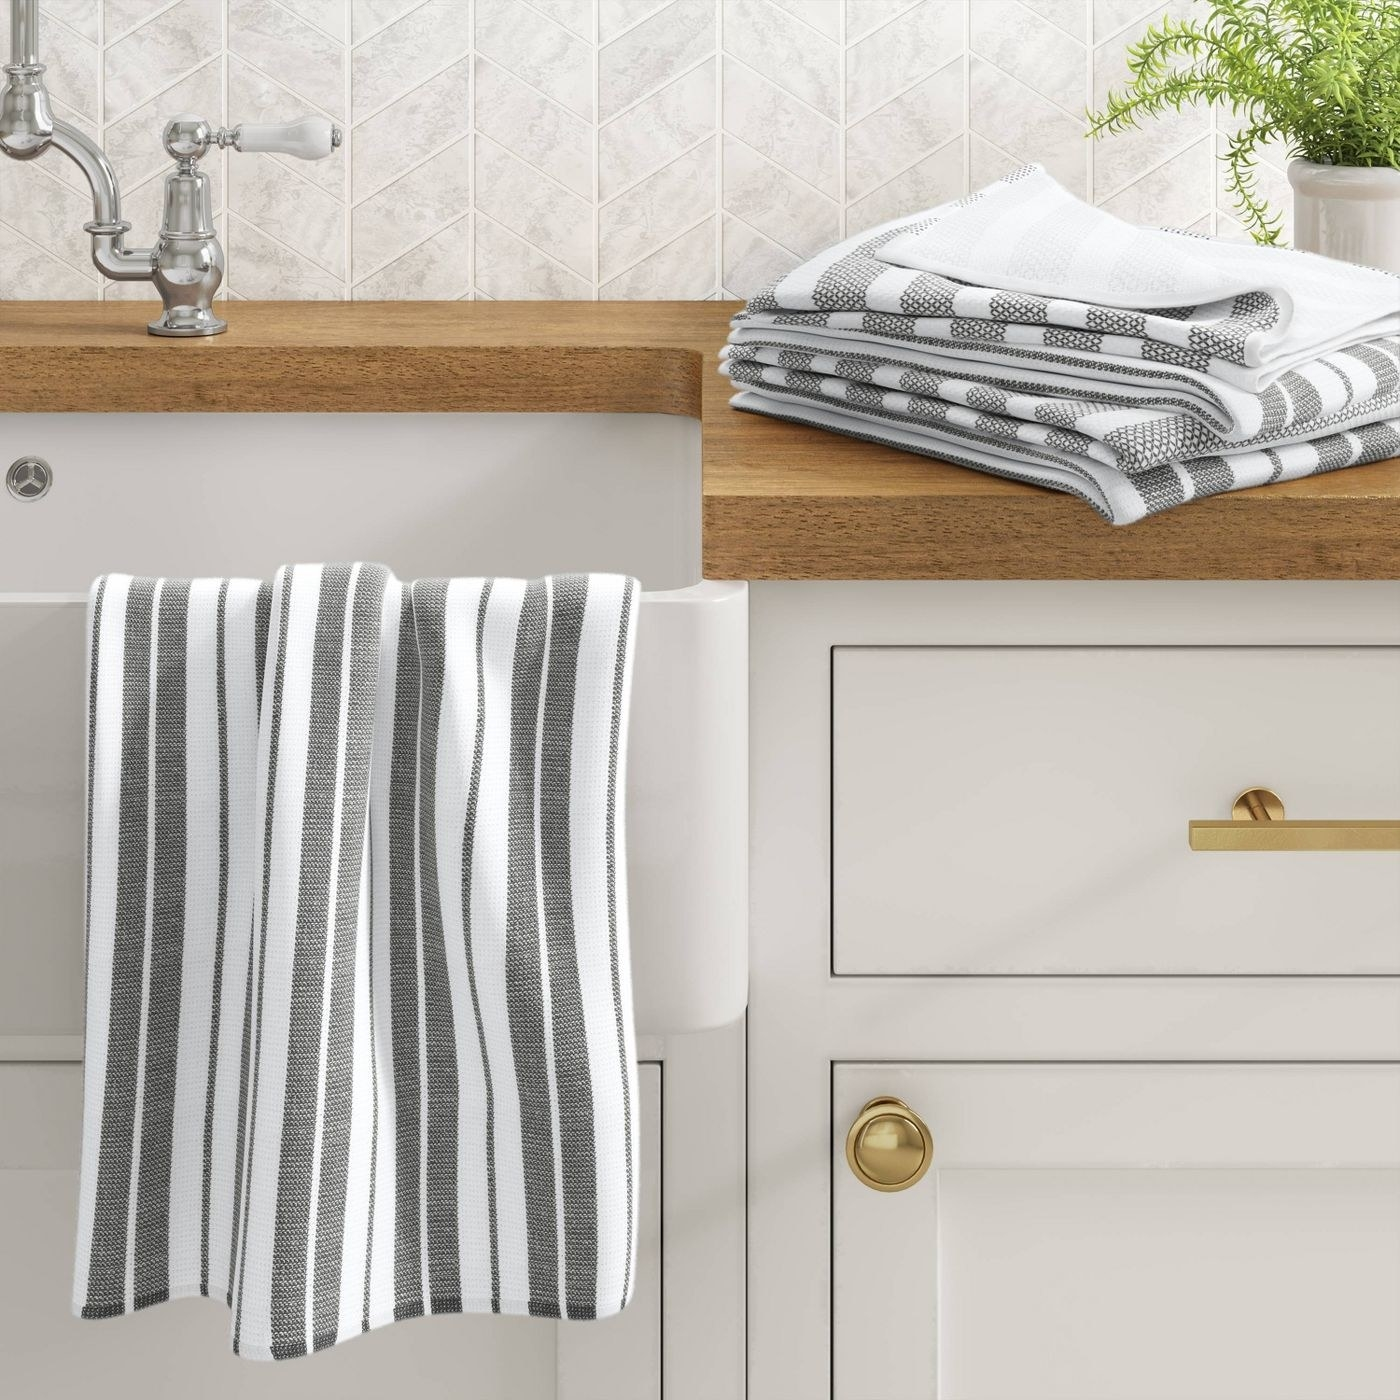 the gray striped towels on a counter and hanging on the edge of a sink